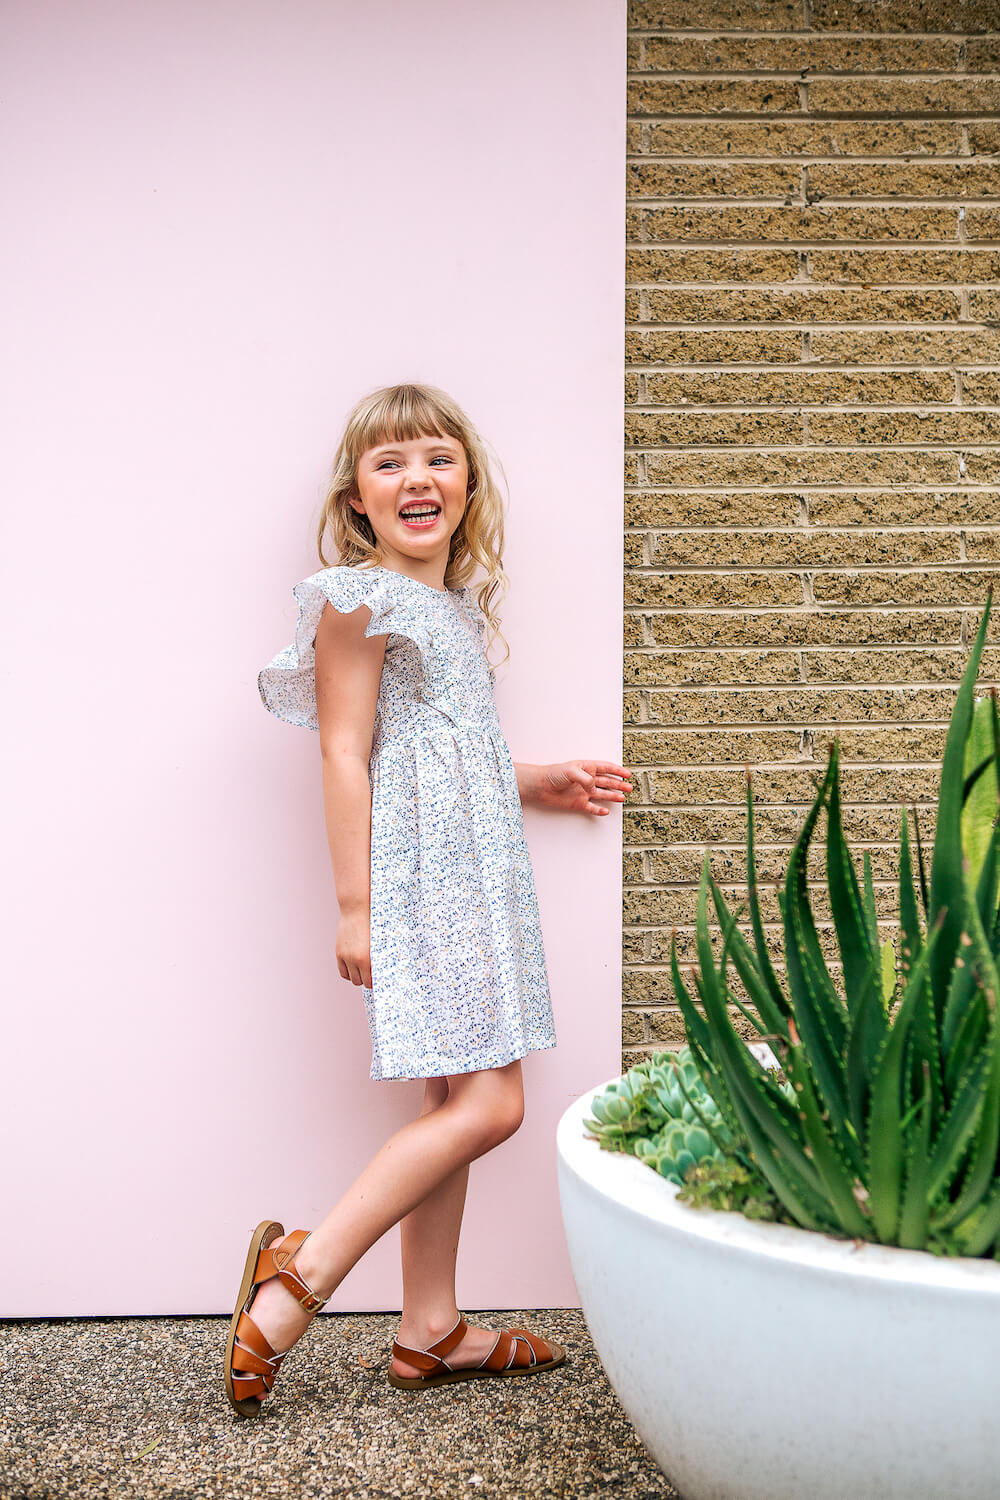 Peggy Marley Dress Mini Blue Floral | Tiny People